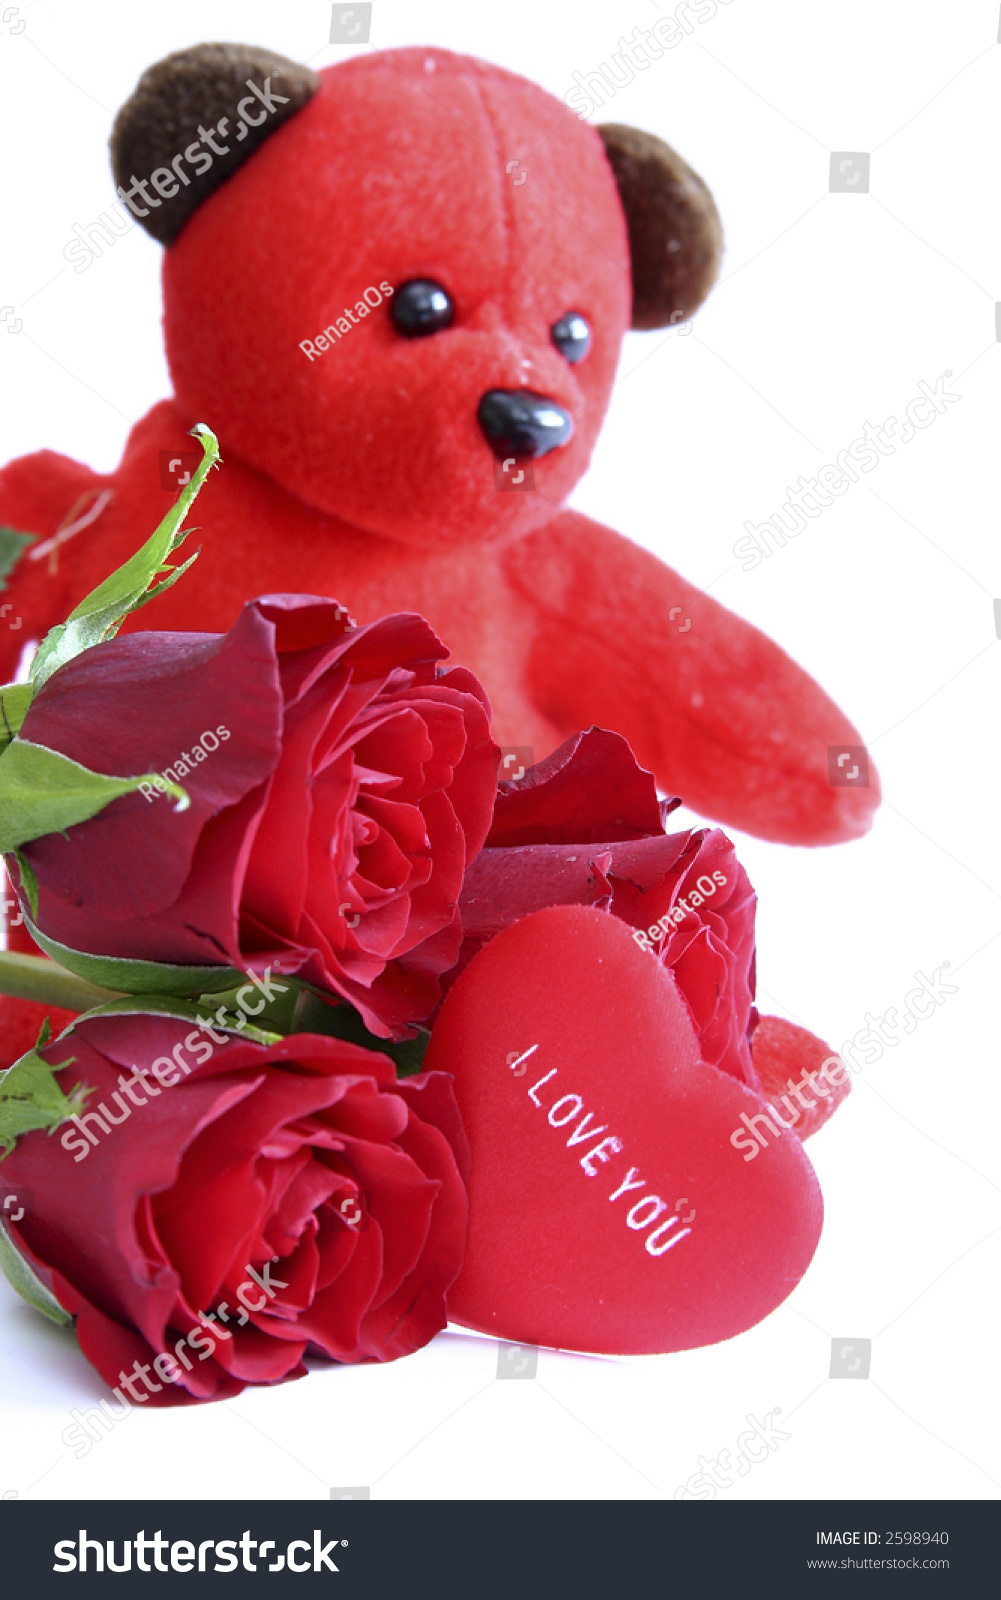 Red teddy bear roses message on stock photo edit now 2598940 red teddy bear with roses and message on heart saying i love you altavistaventures Images